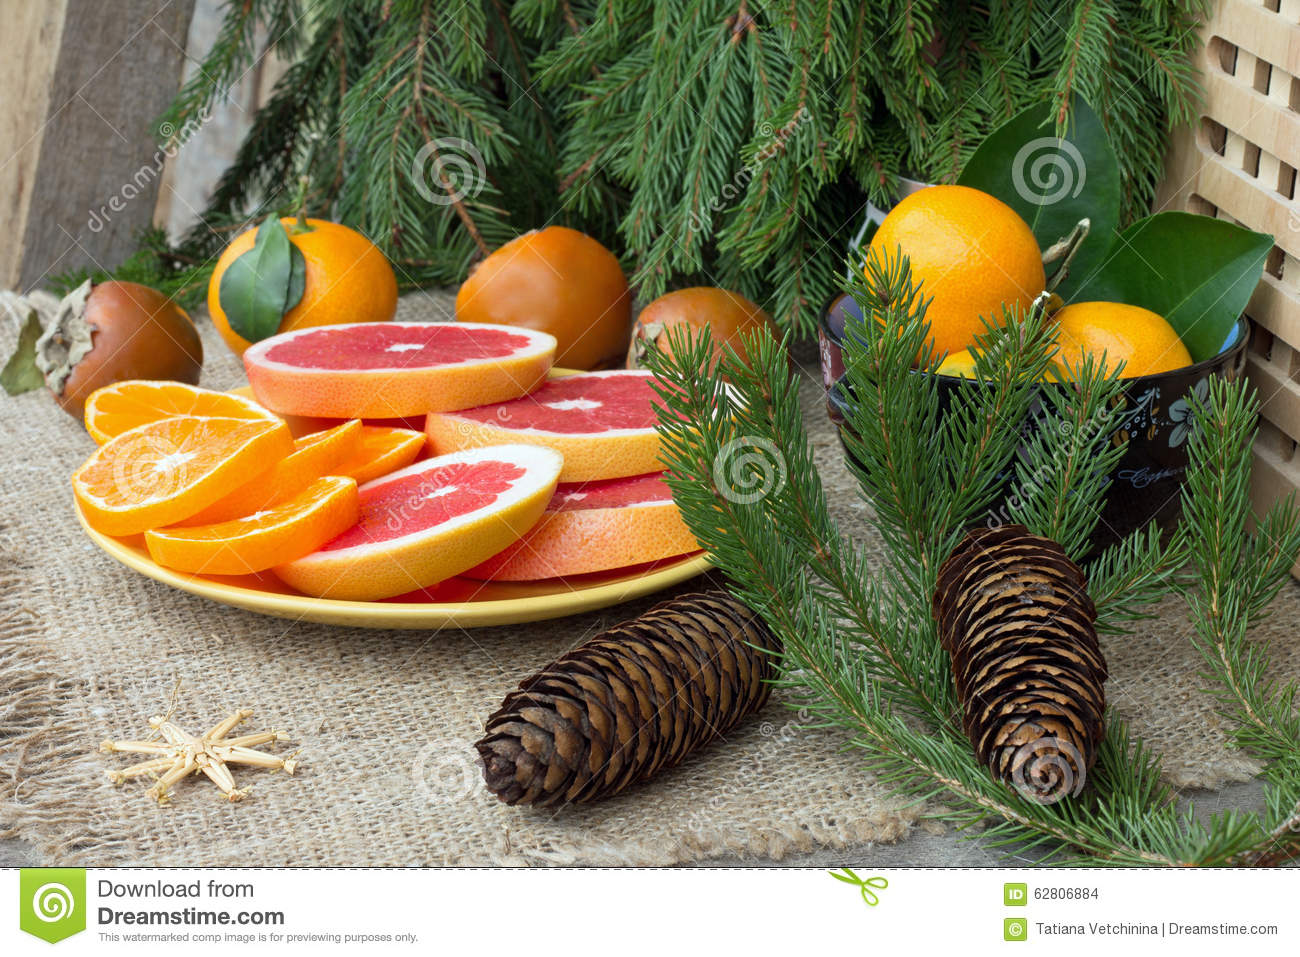 Christmas Tree Fruit Platter.Fruit Platter And Christmas Tree Branches With Cones Stock